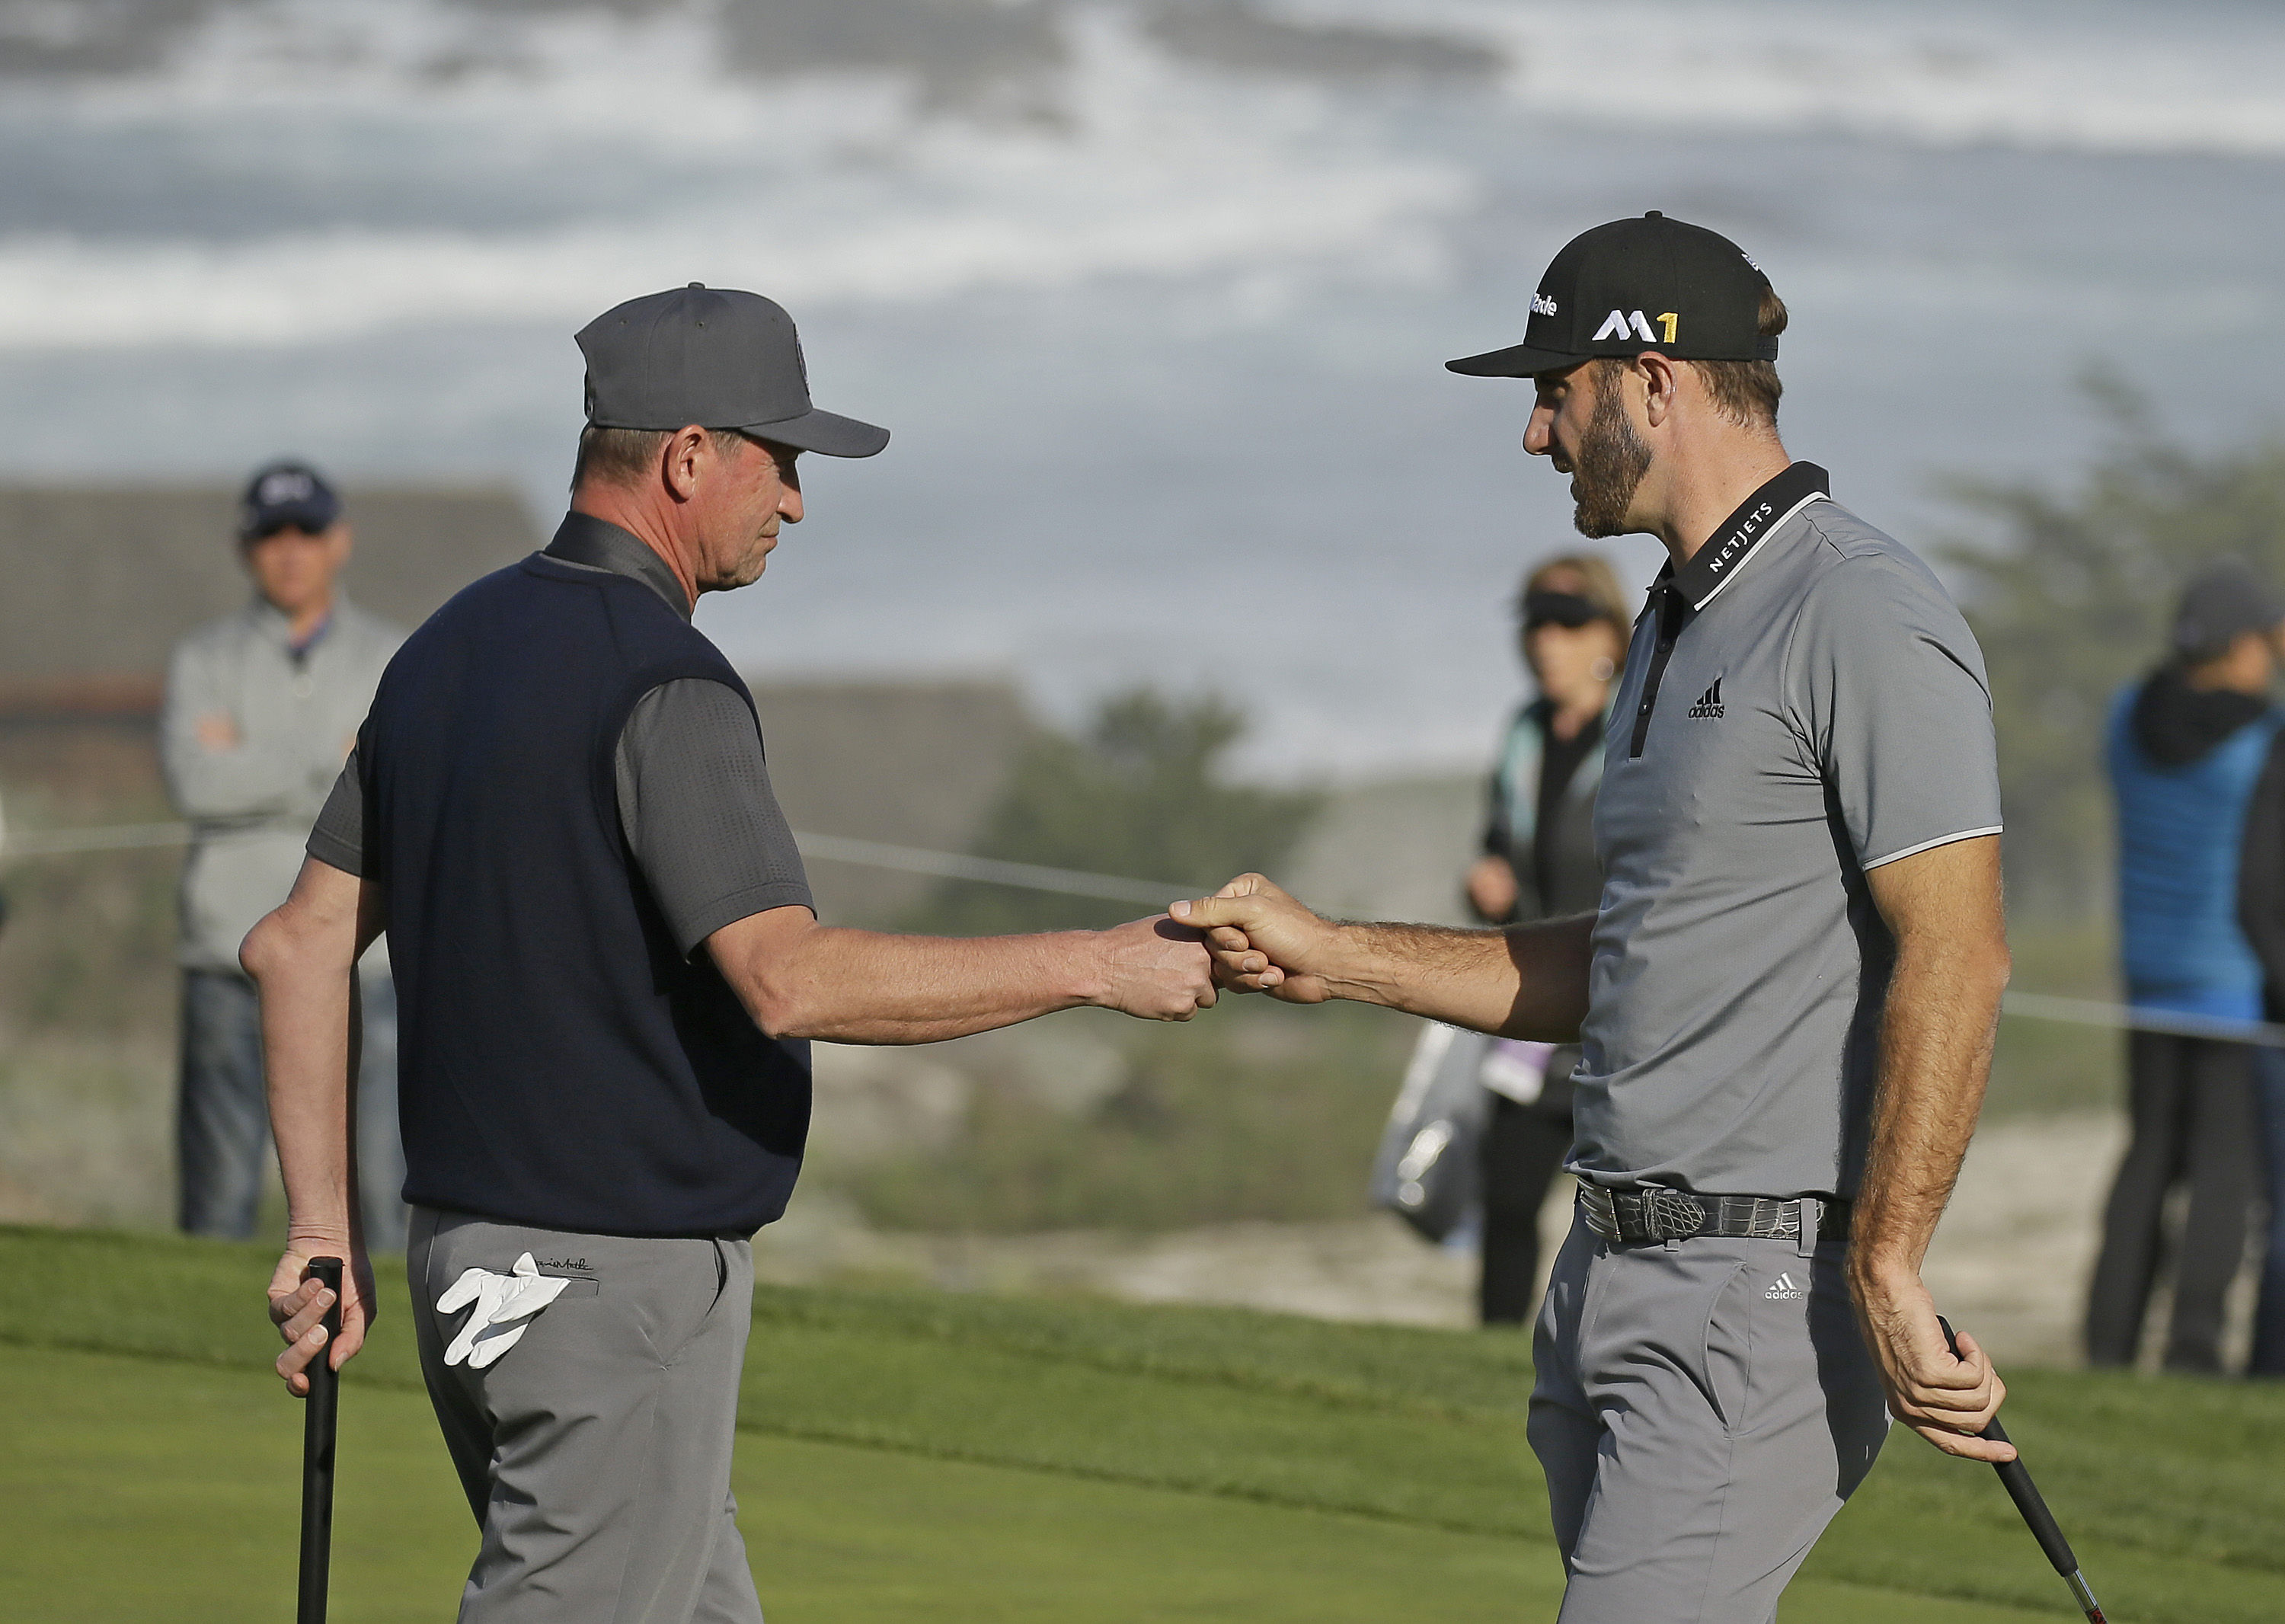 Wayne Gretzky, left, is greeted by playing partner Dustin Johnson, right, after putting on the second green of the Spyglass Hill Golf Course during the first round of the AT&T Pebble Beach National Pro-Am golf tournament Thursday, Feb. 11, 2016, in